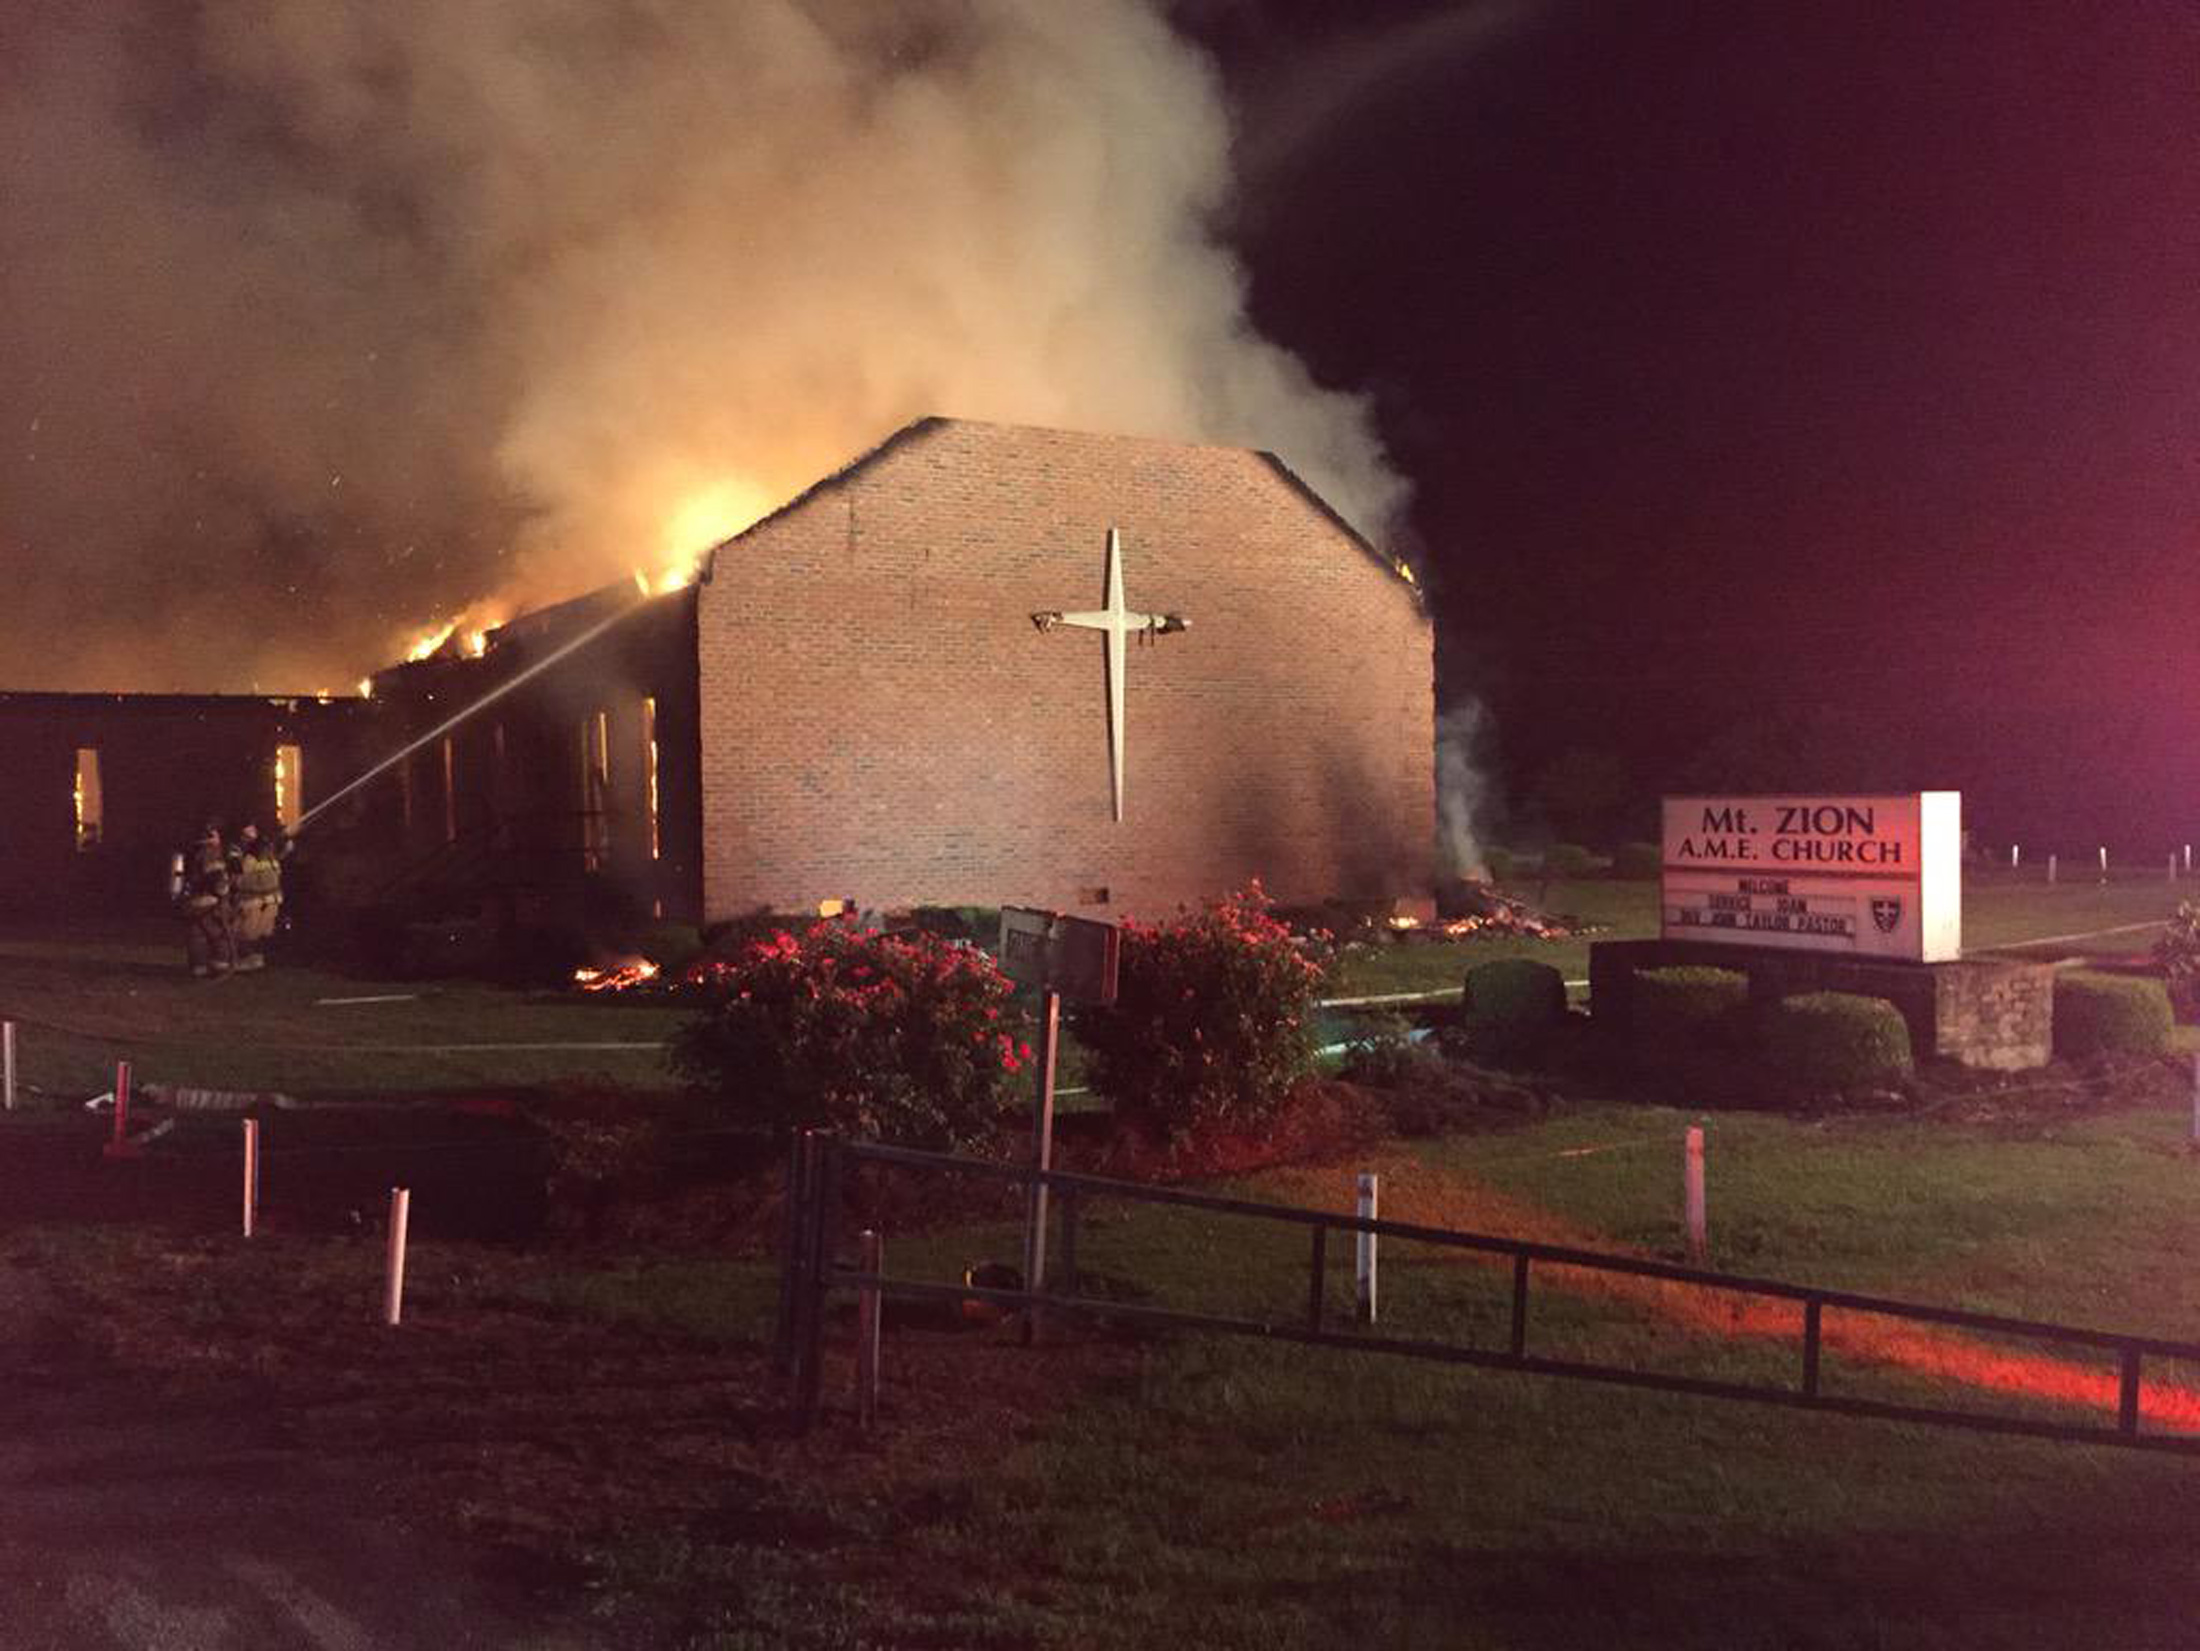 Black churches burning african american congregation leaders